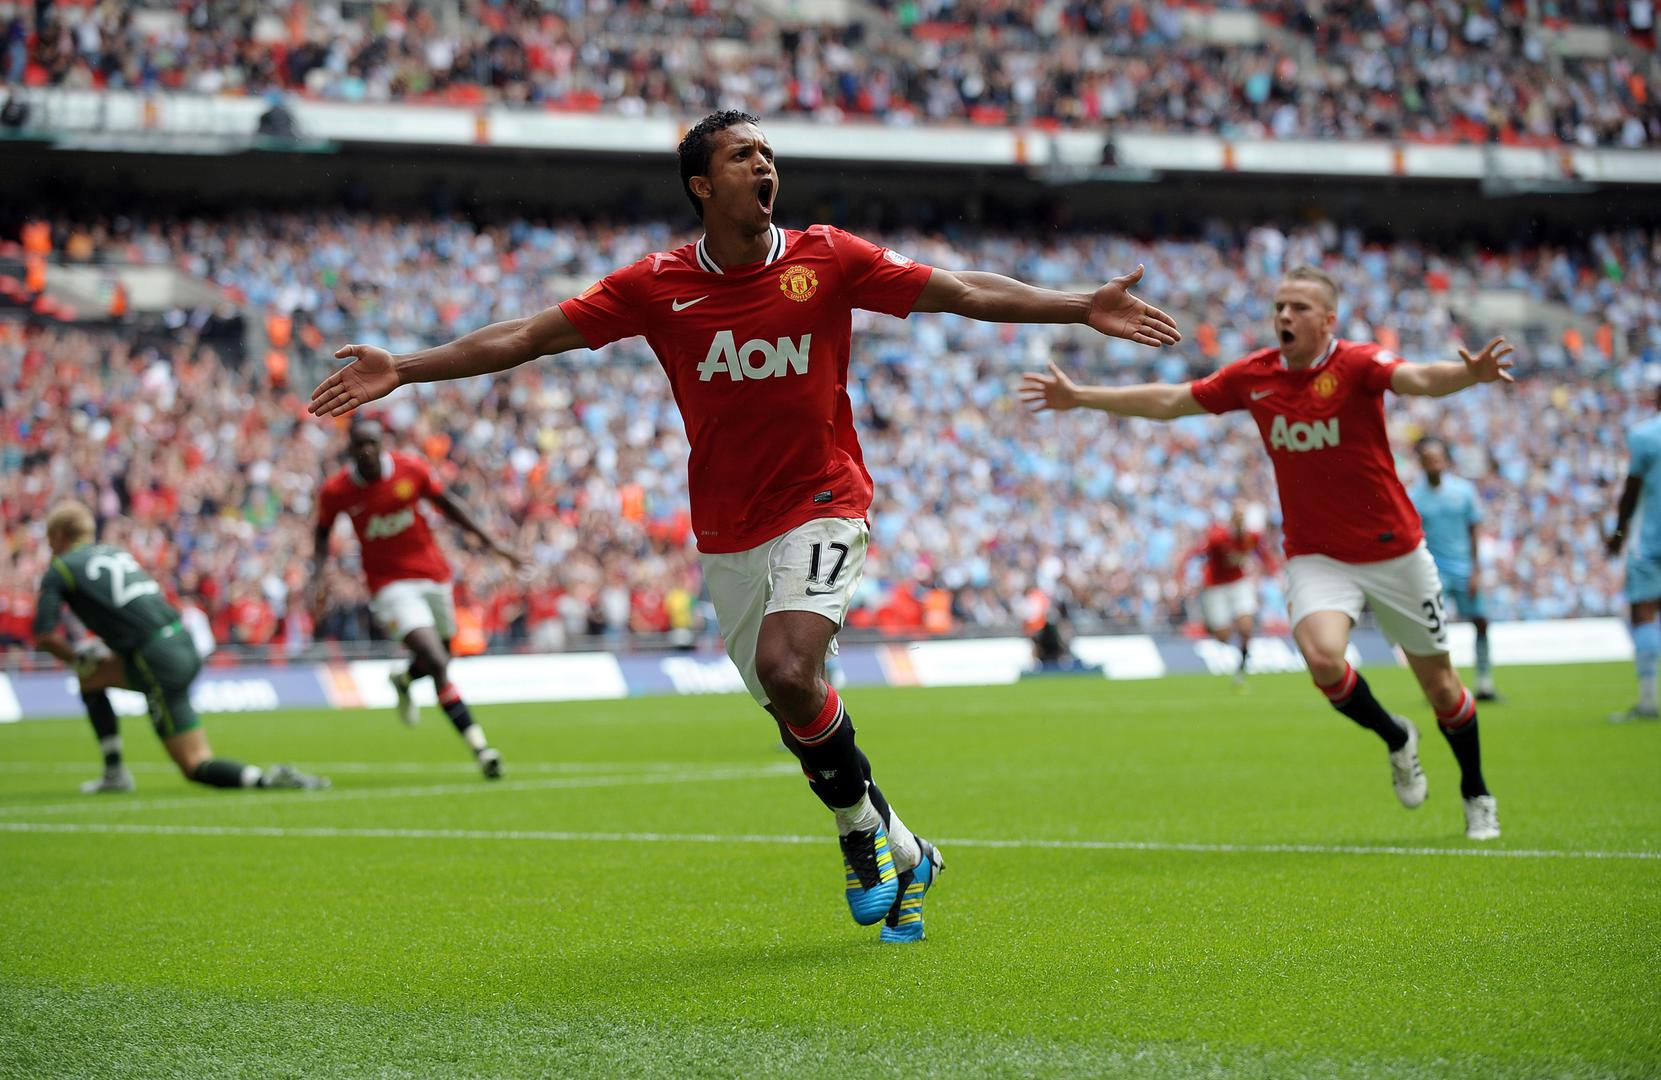 Nani scores for Manchester United against Manchester City in the 2011 Community Shield.